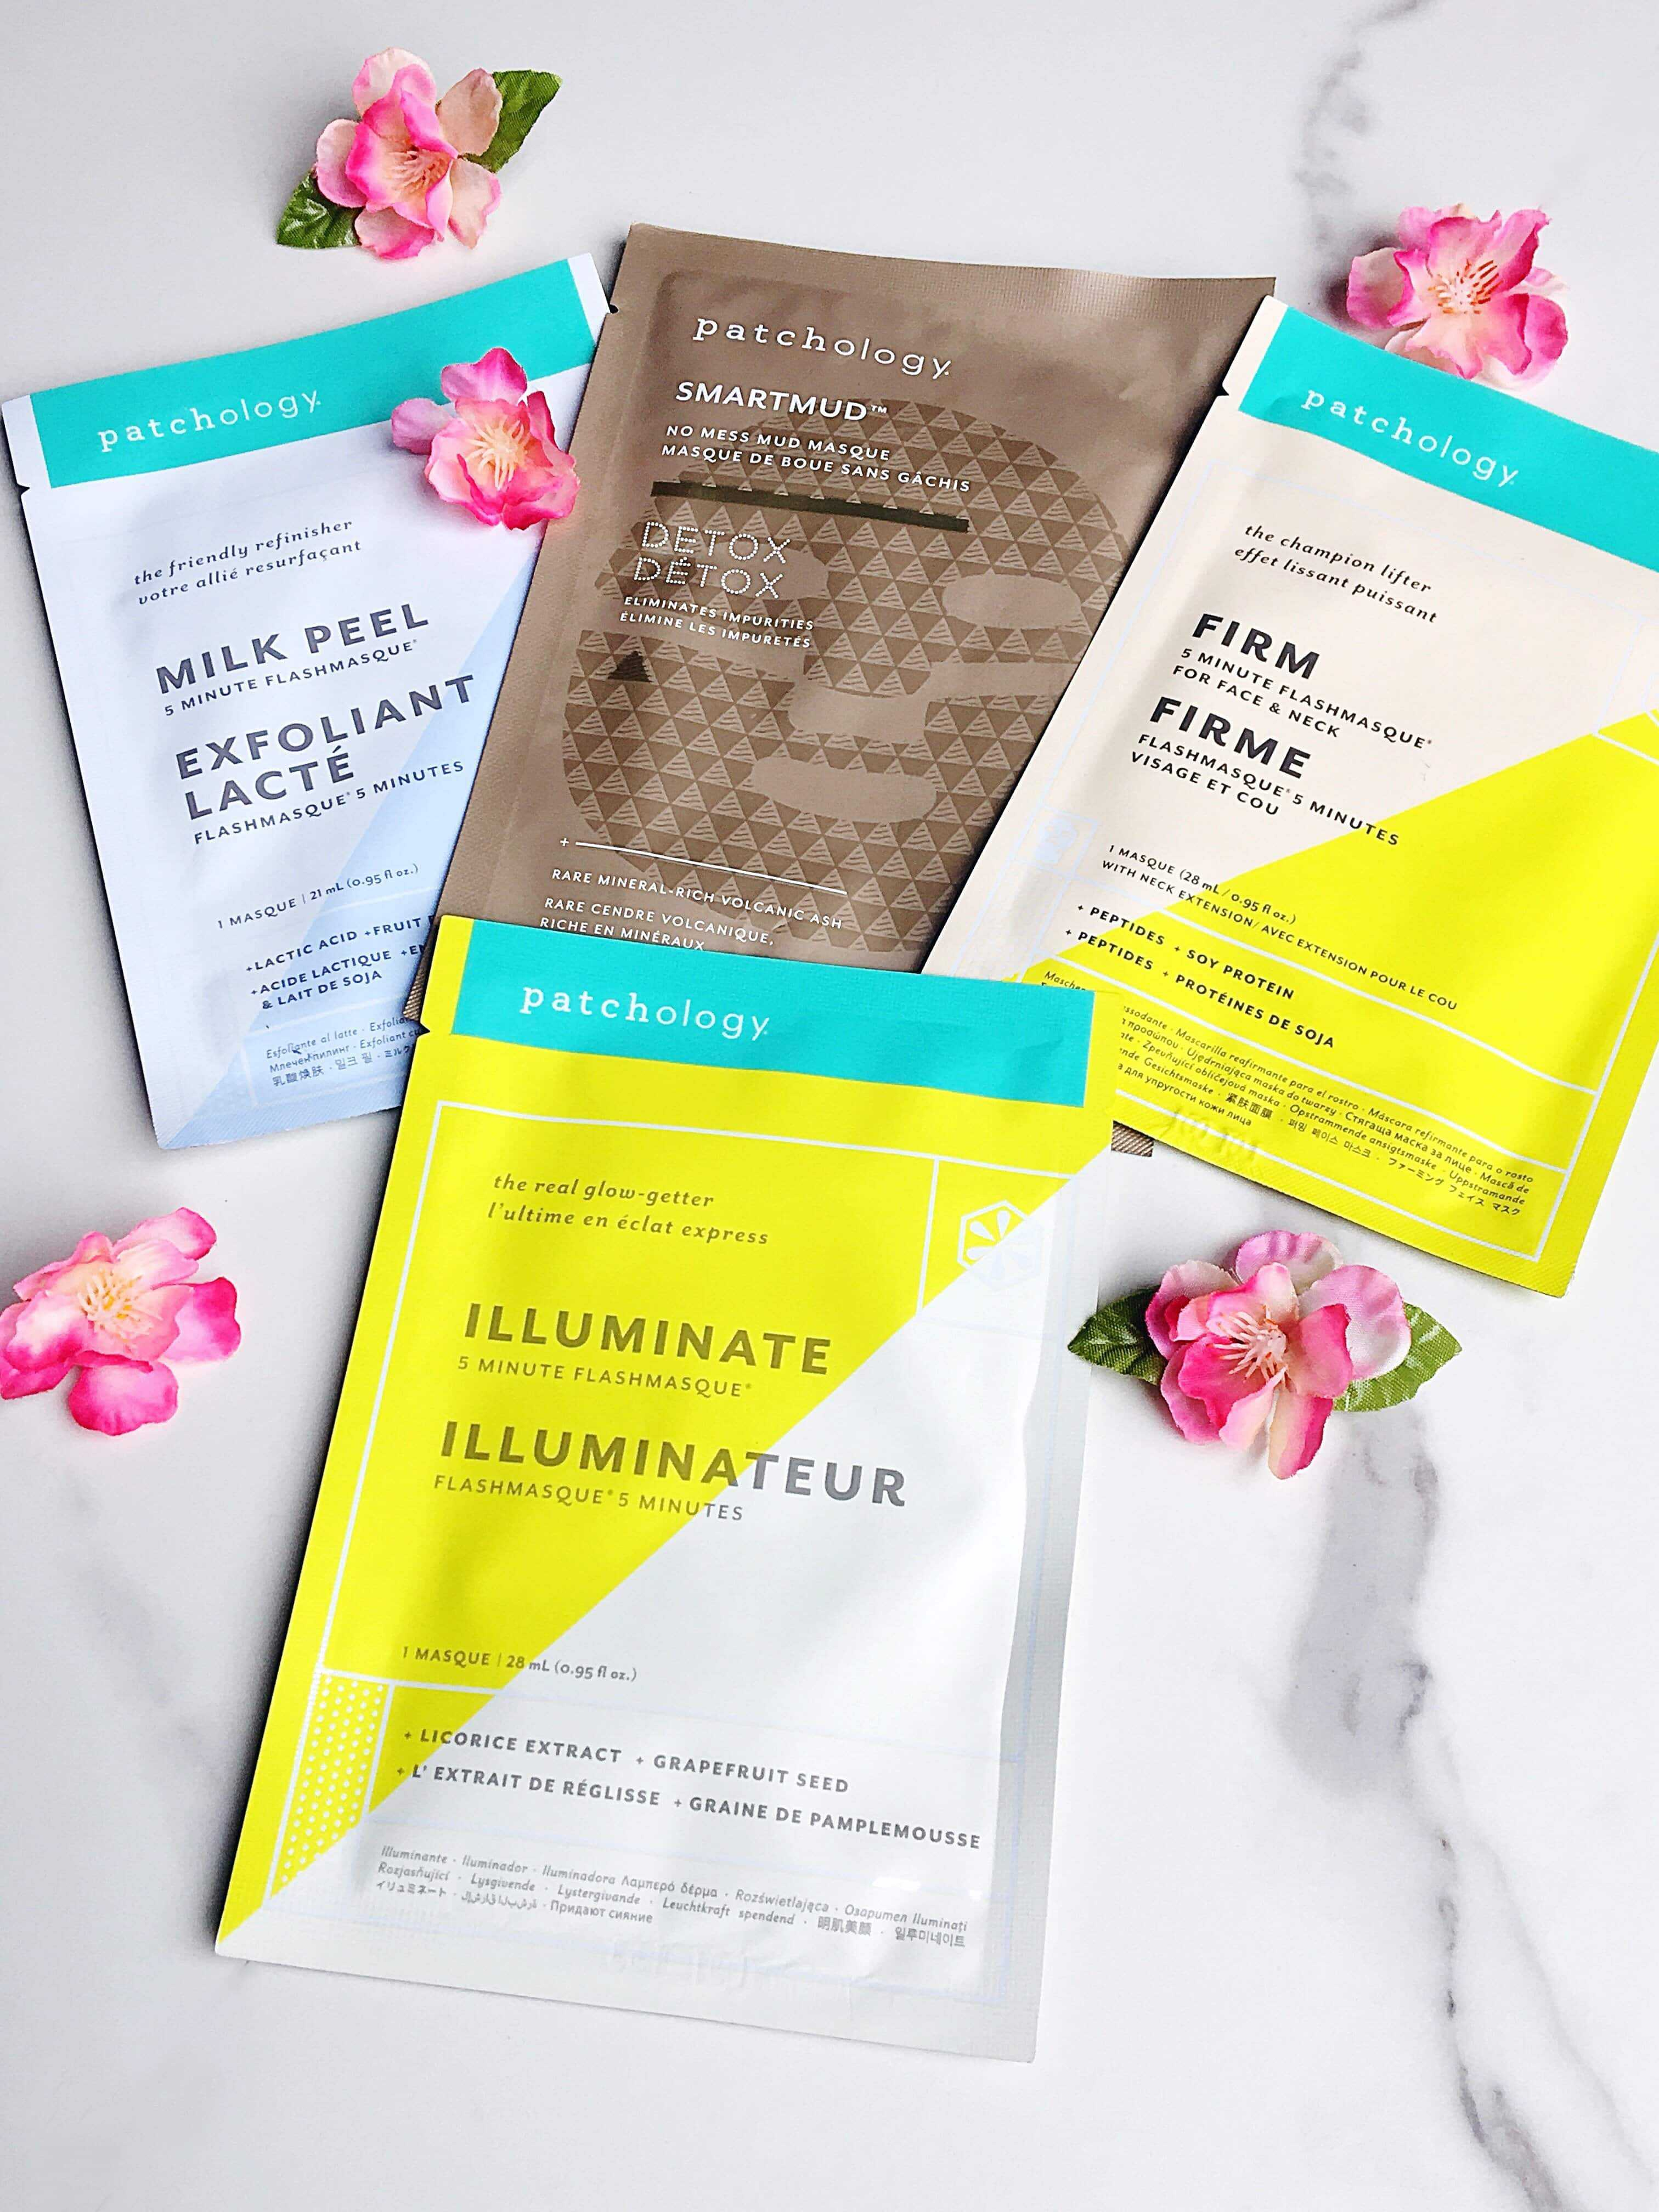 The Best Sheet Masks For Every Skin Need- Love a good sheet mask for nourishing the skin? Then you'll love today's beauty post where I'm sharing all the benefits of using sheet masks as part of your skincare routine and the best sheet masks for every skin need! I'm also sharing tips on how to use sheet masks to achieve the best results!